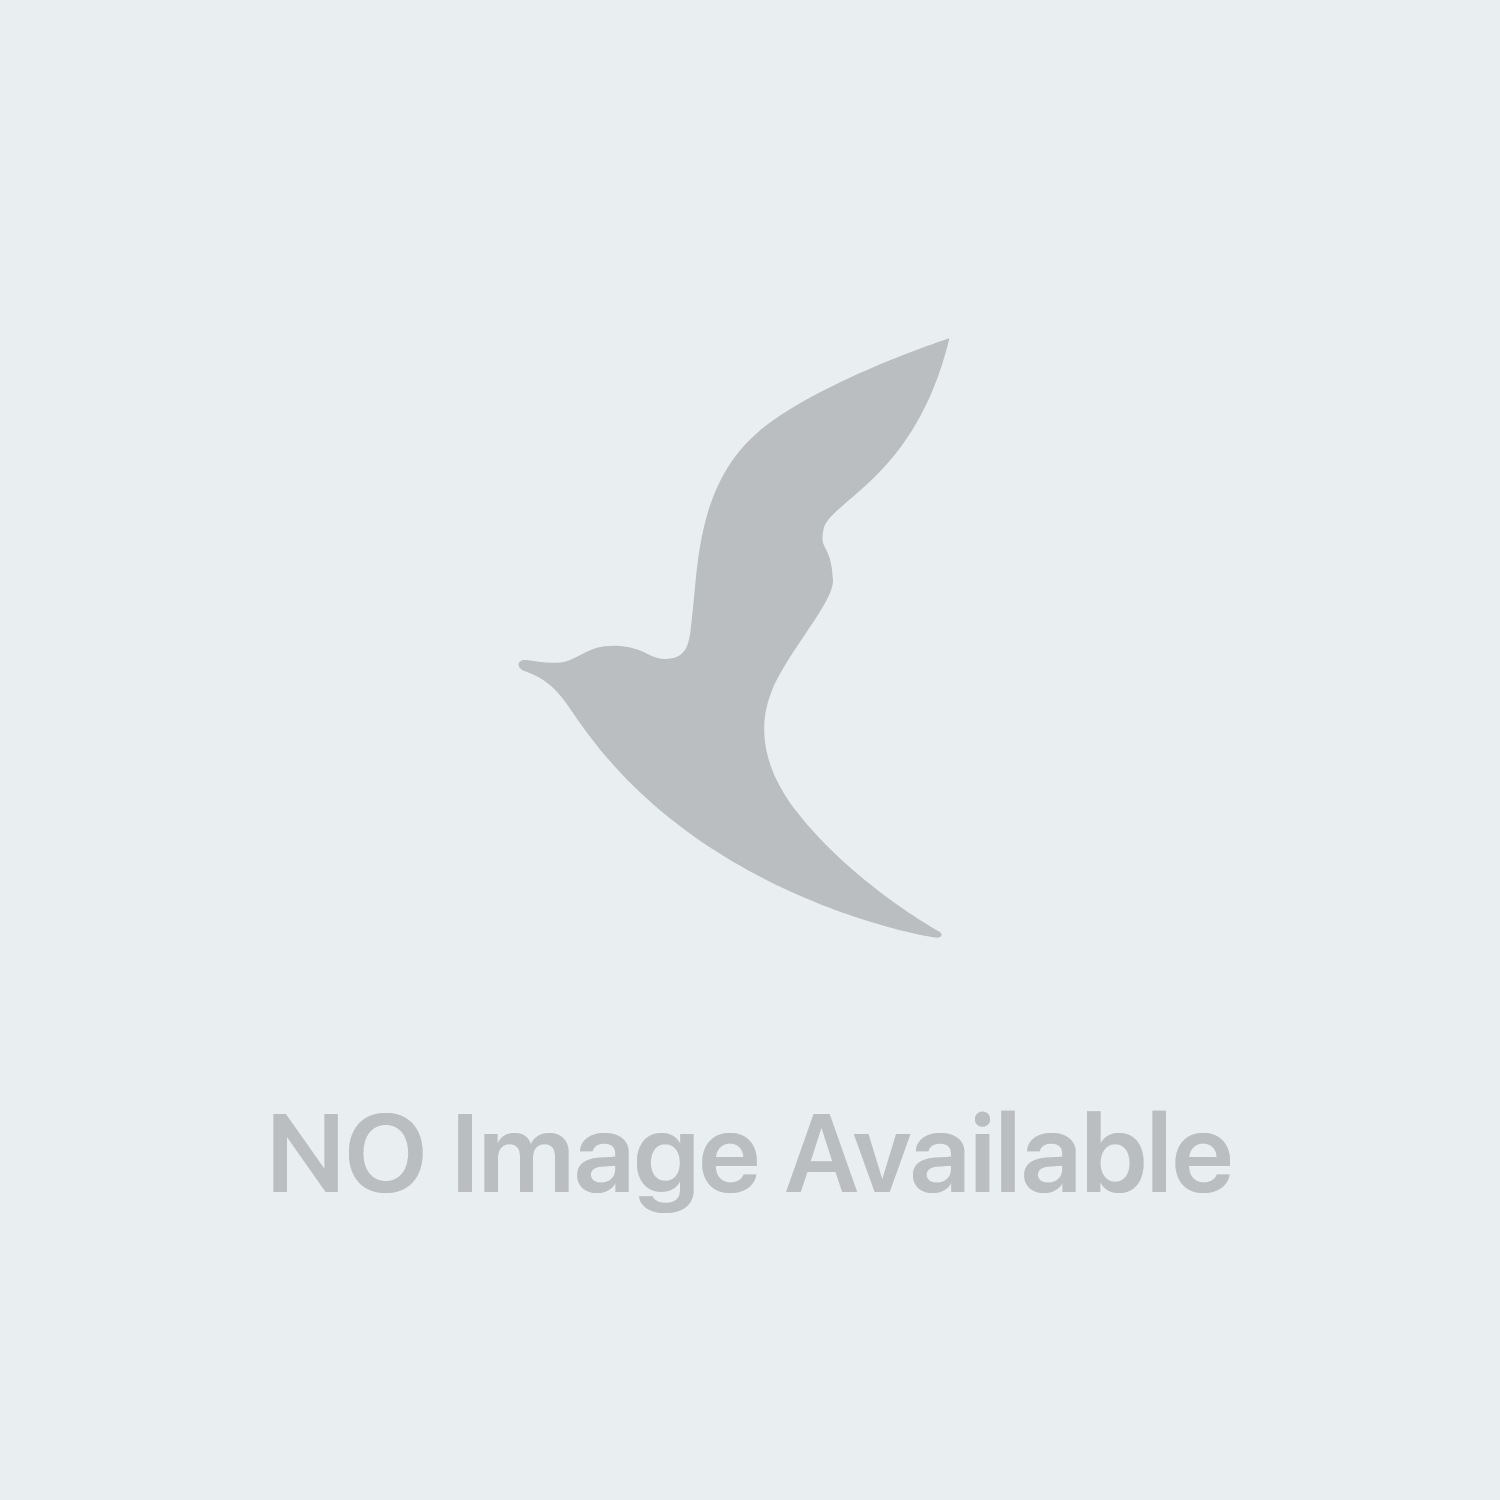 Enerzona Chips 40-30-30 Snack di Soia Gusto Pizza 1 Mini-pack